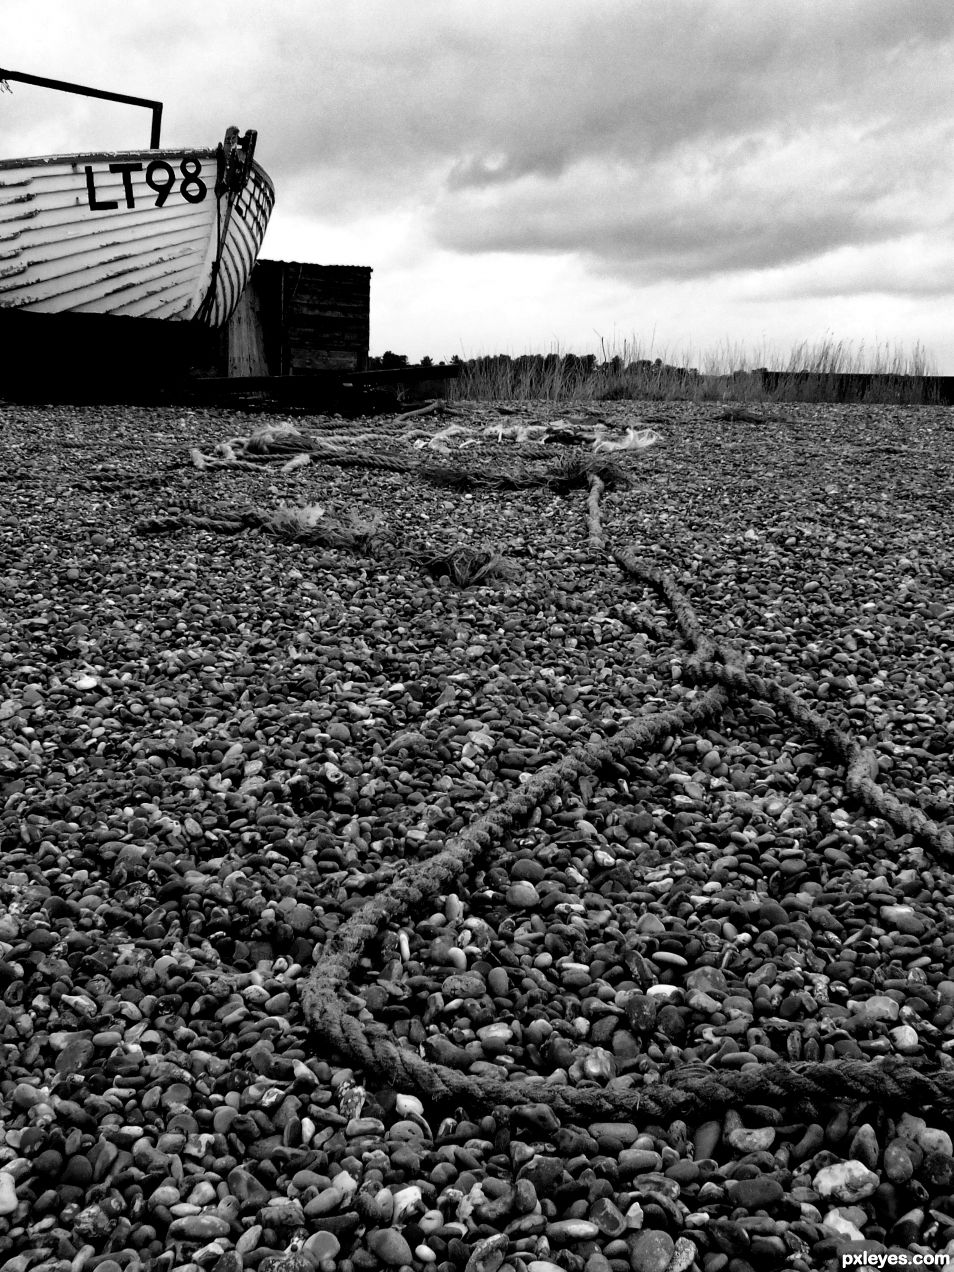 Discarded Rope